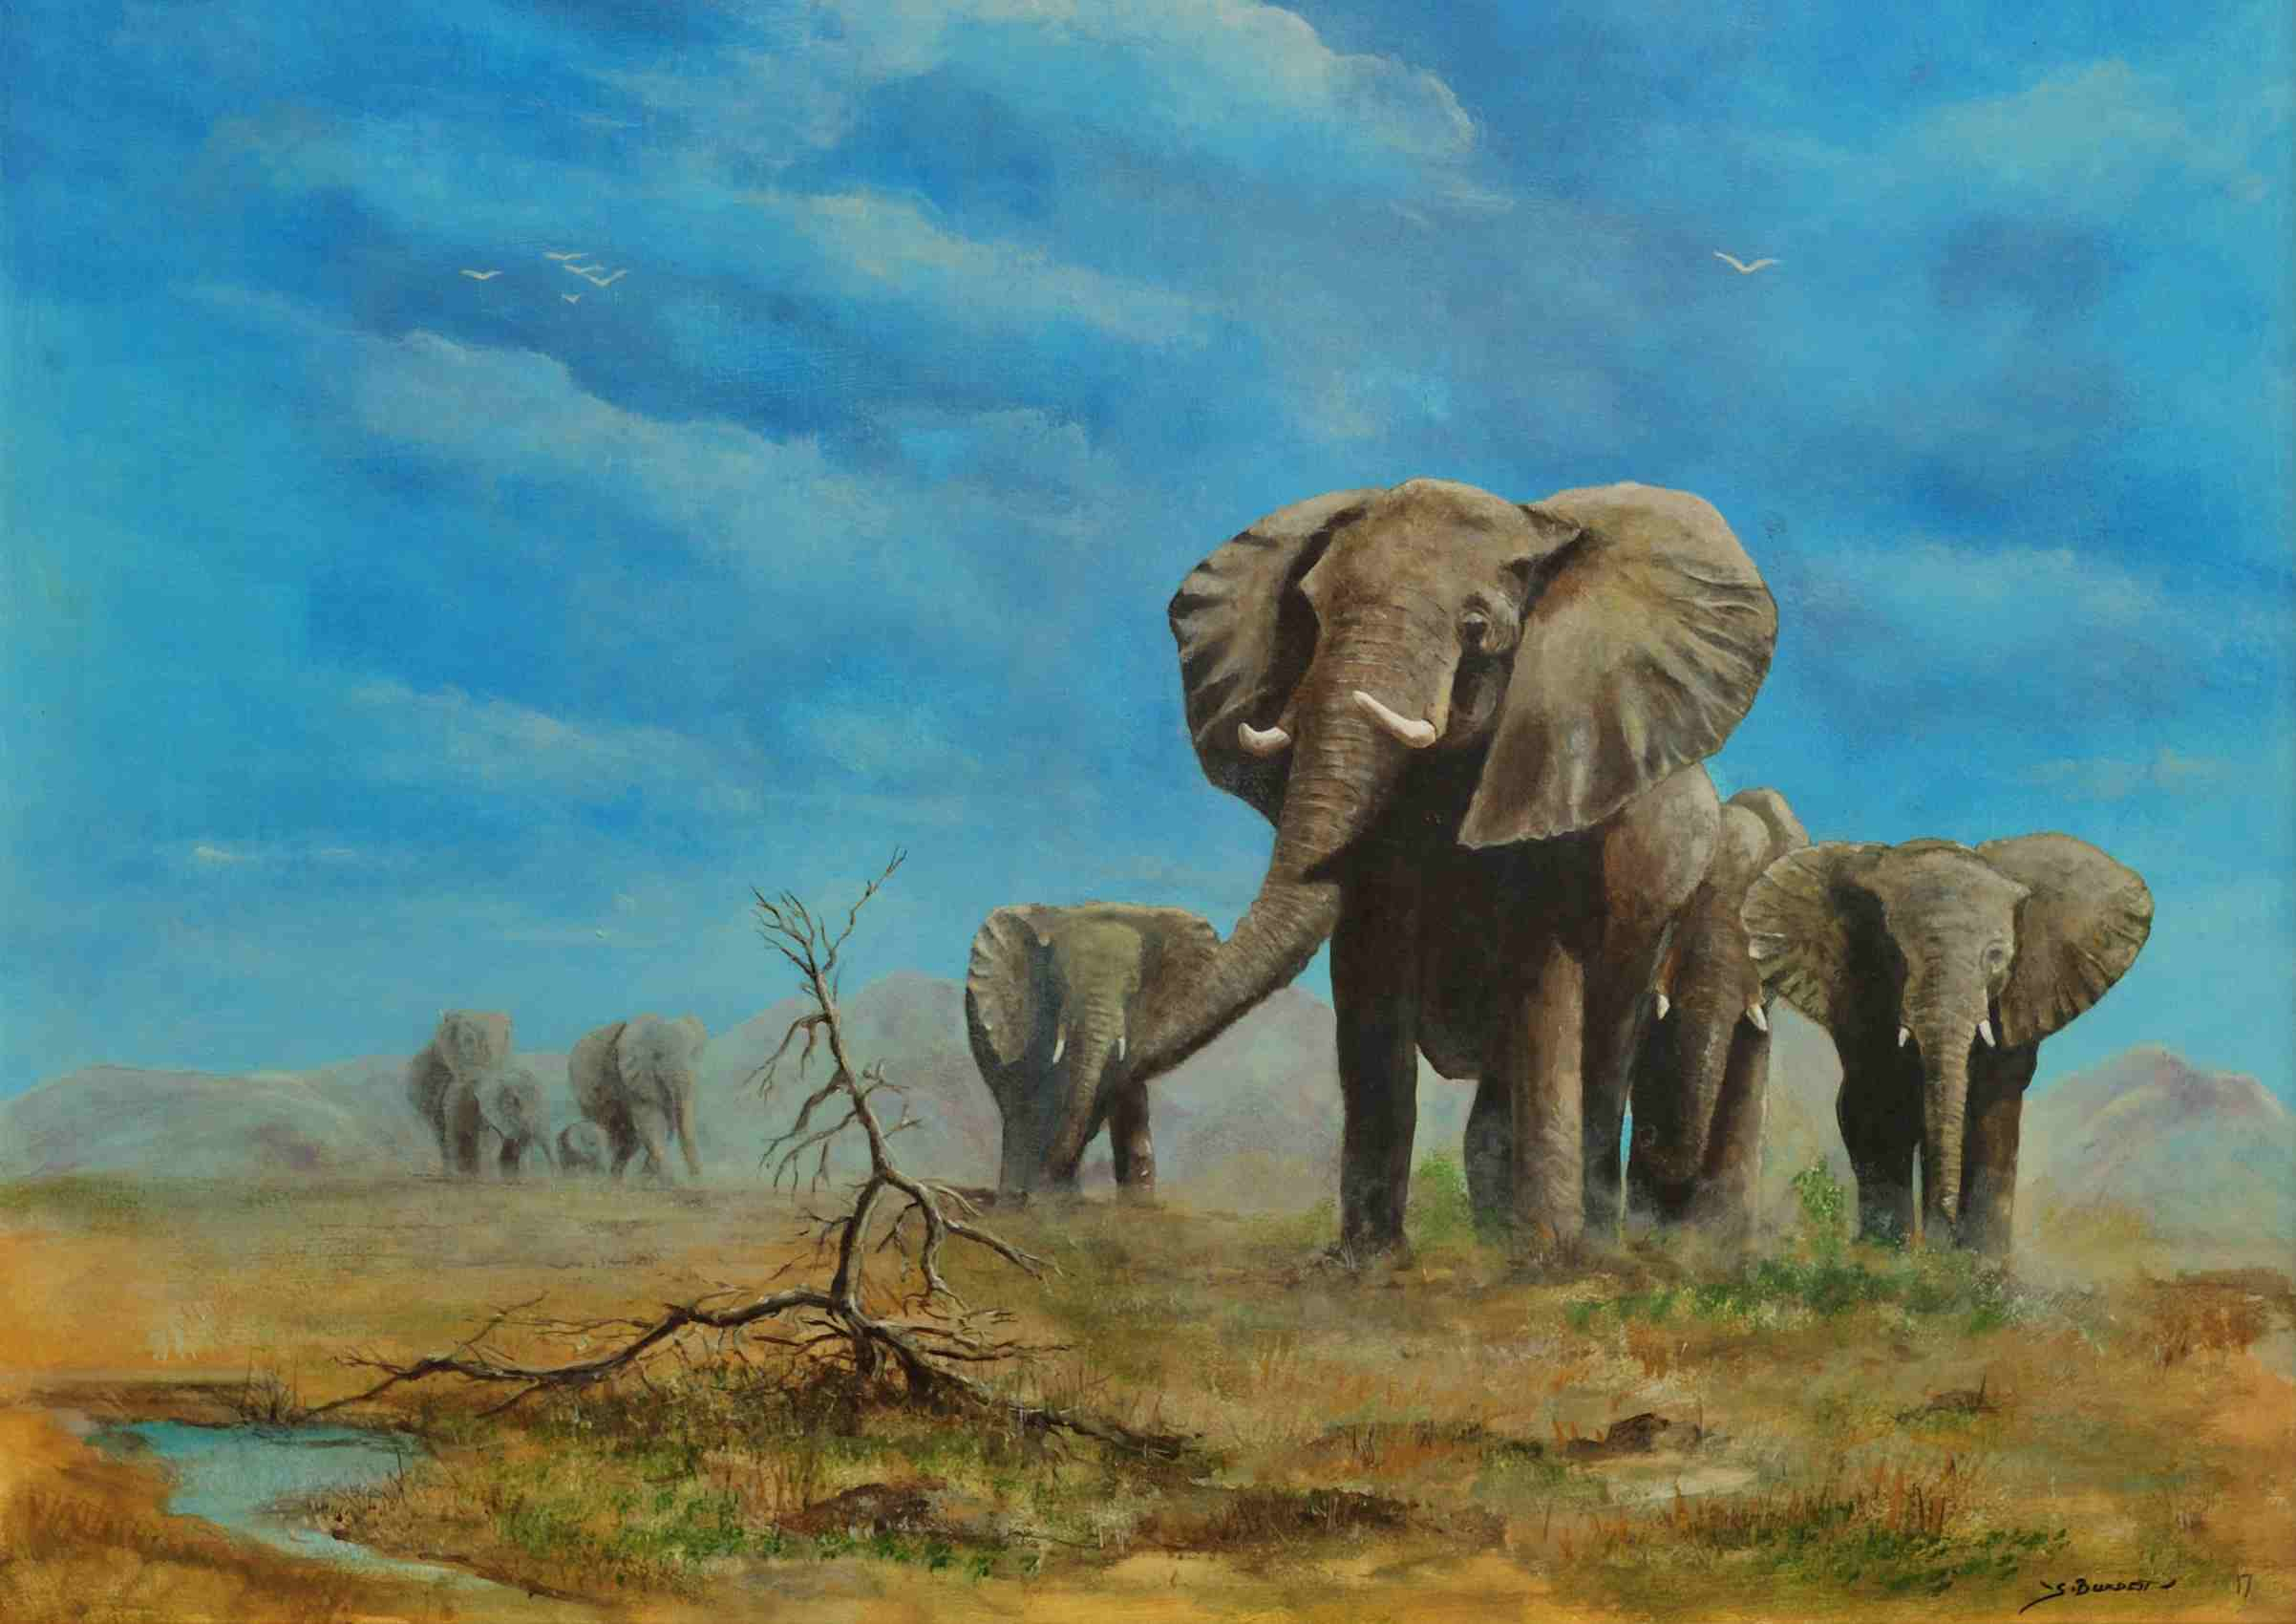 GIANTS OF THE SAVANNA